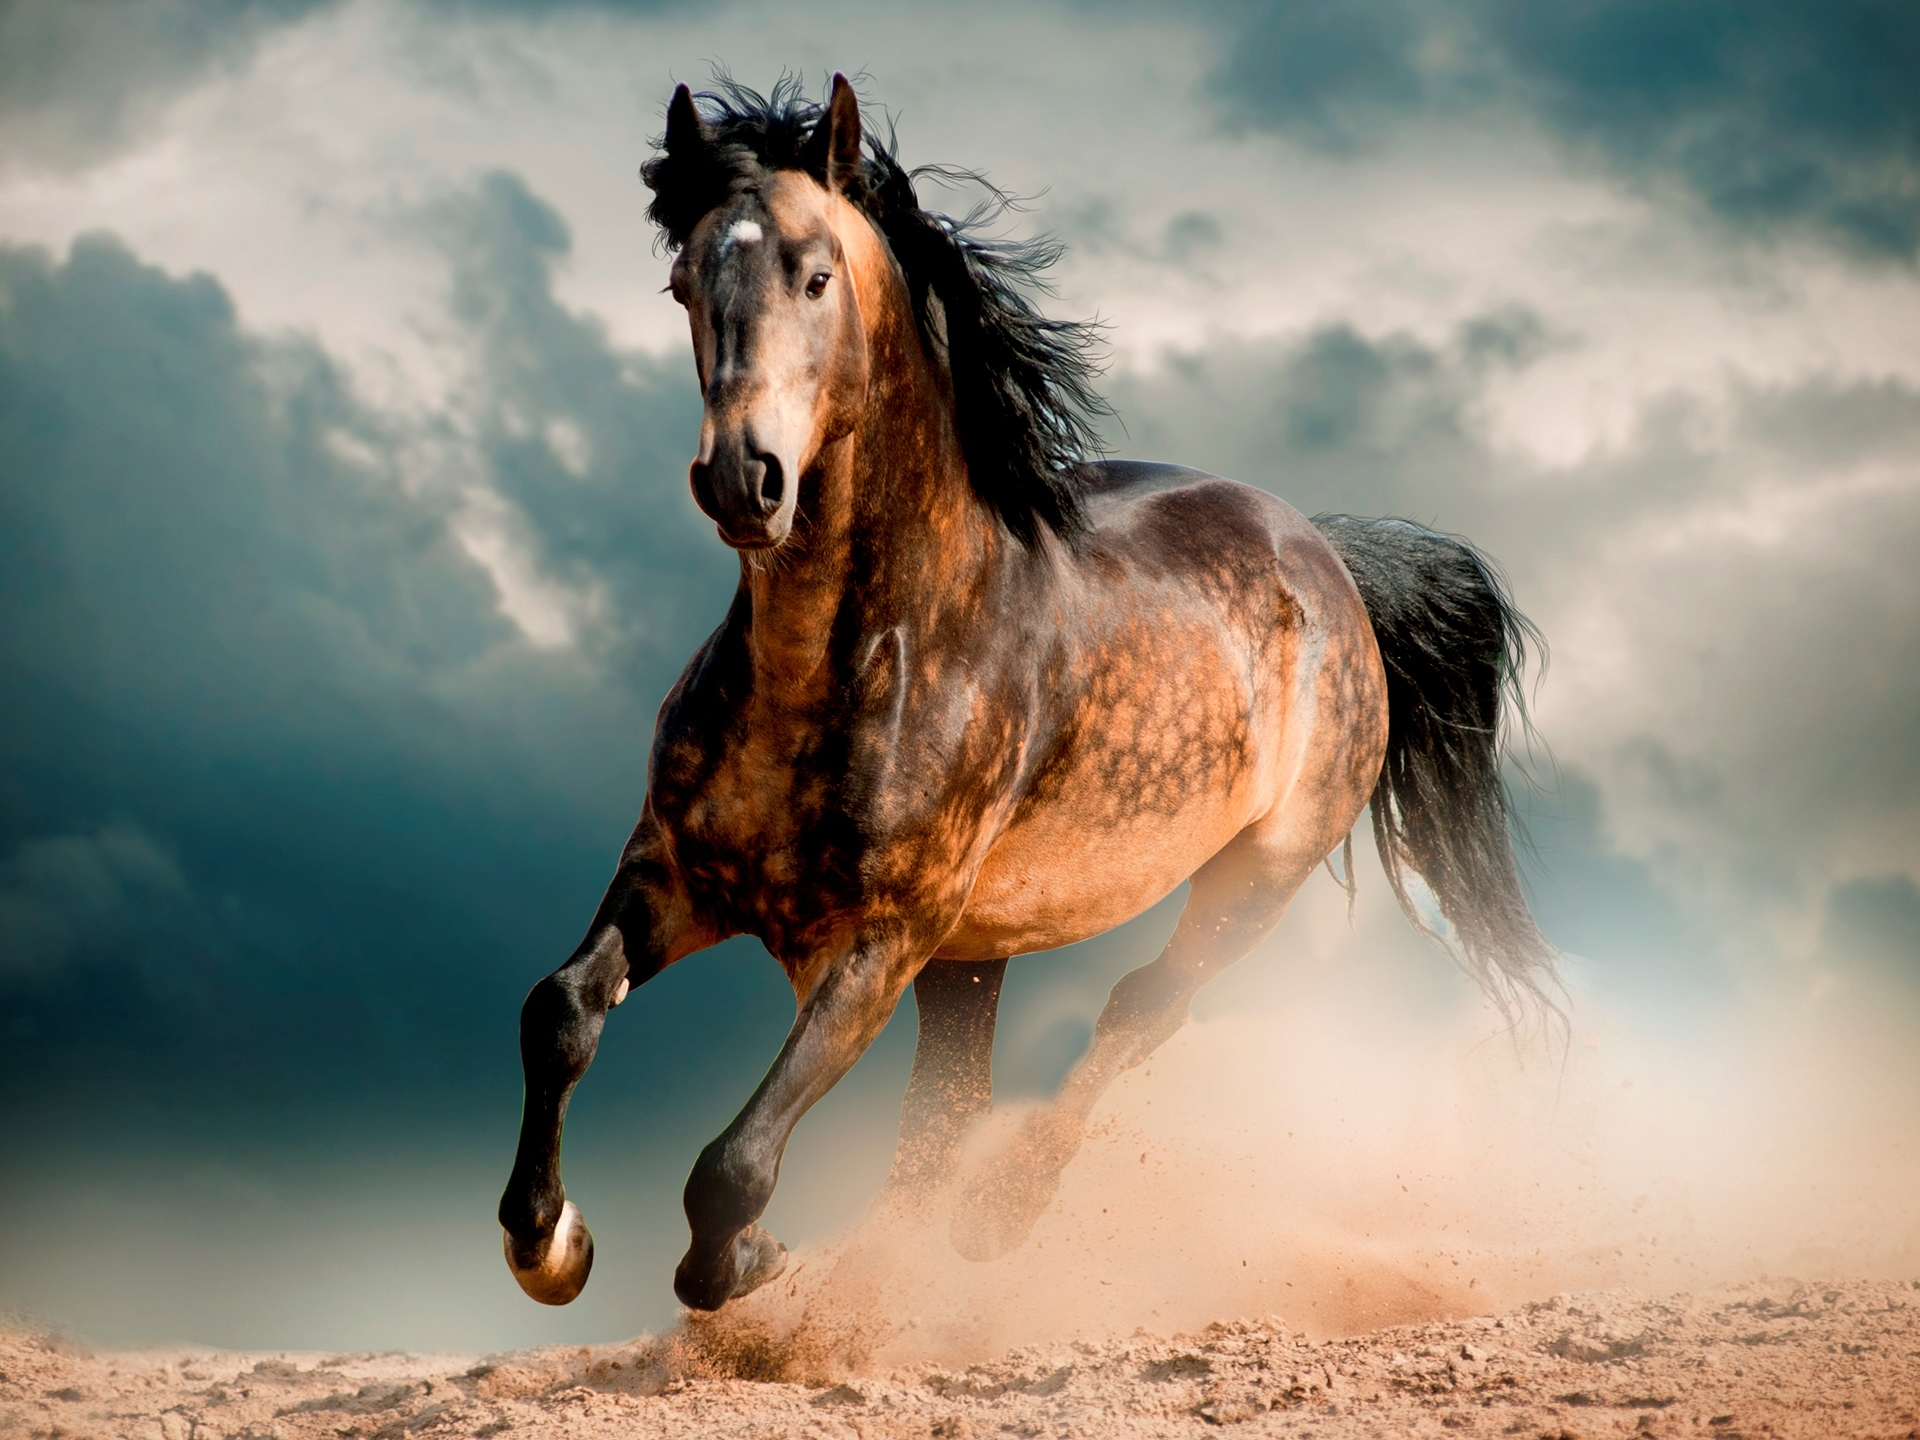 freedom animal dust wind picture sky clouds photo wallpaper 1920x1440